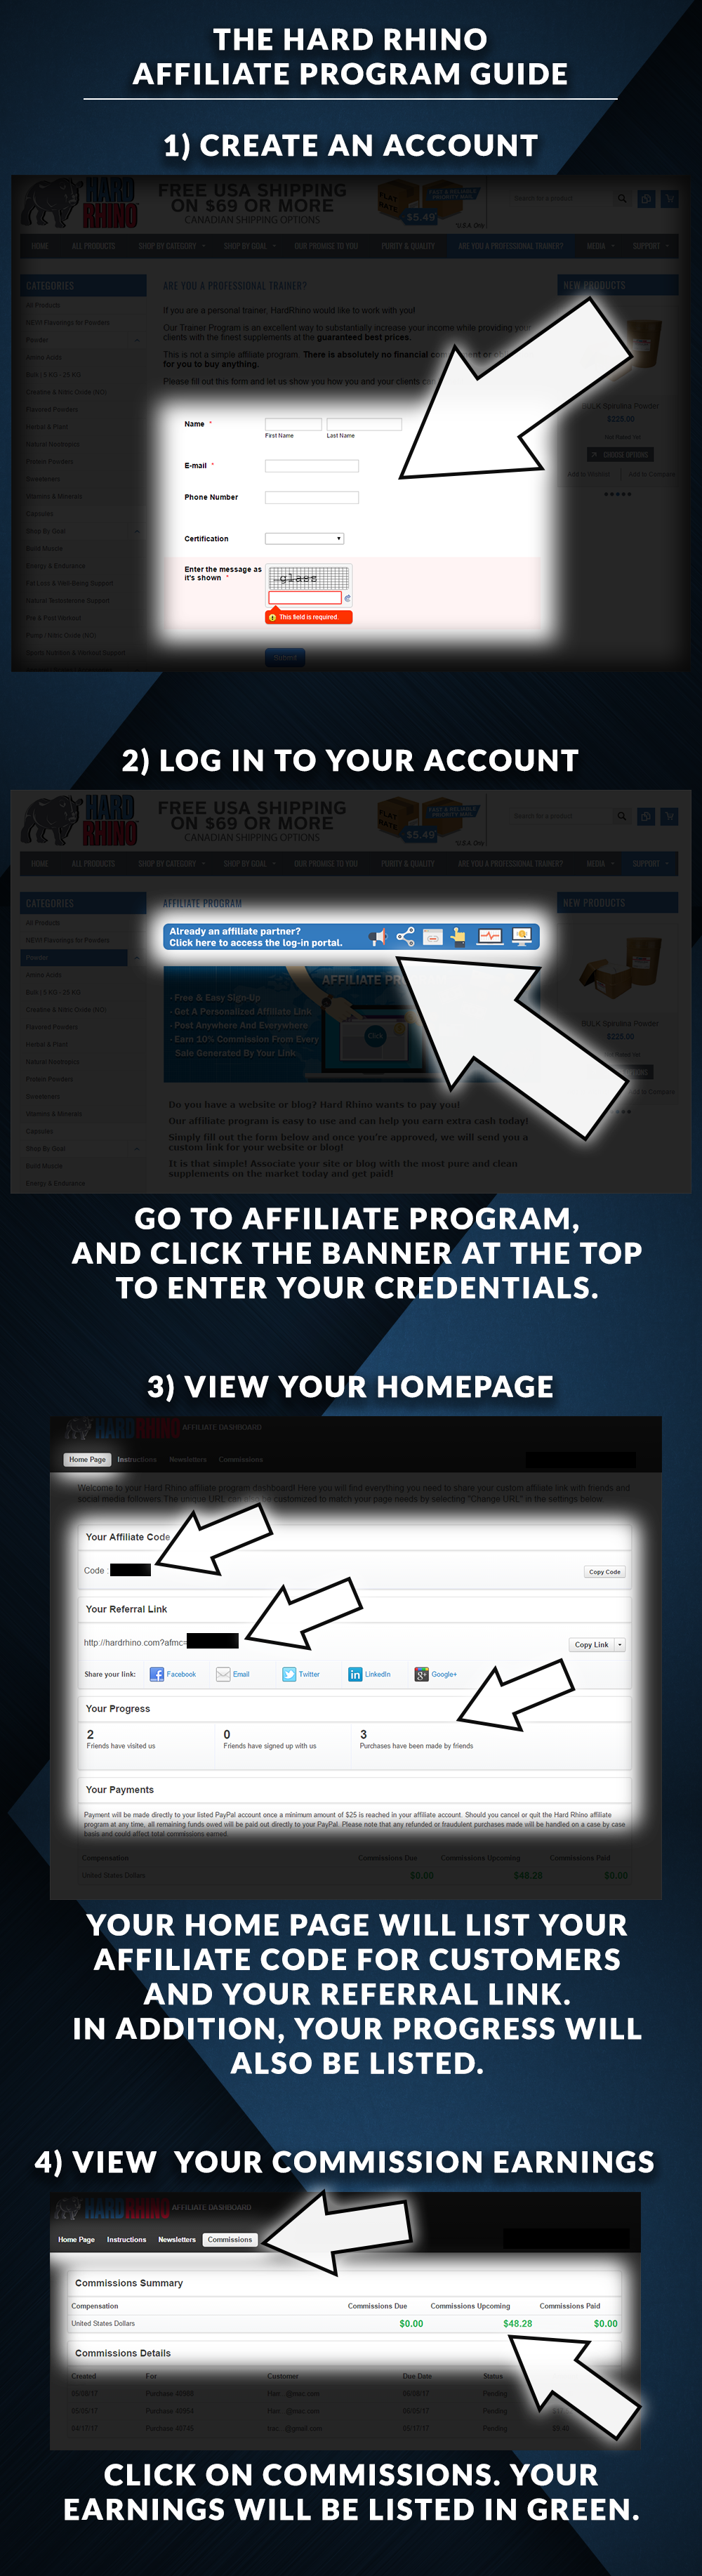 affiliate-program-instructions.png